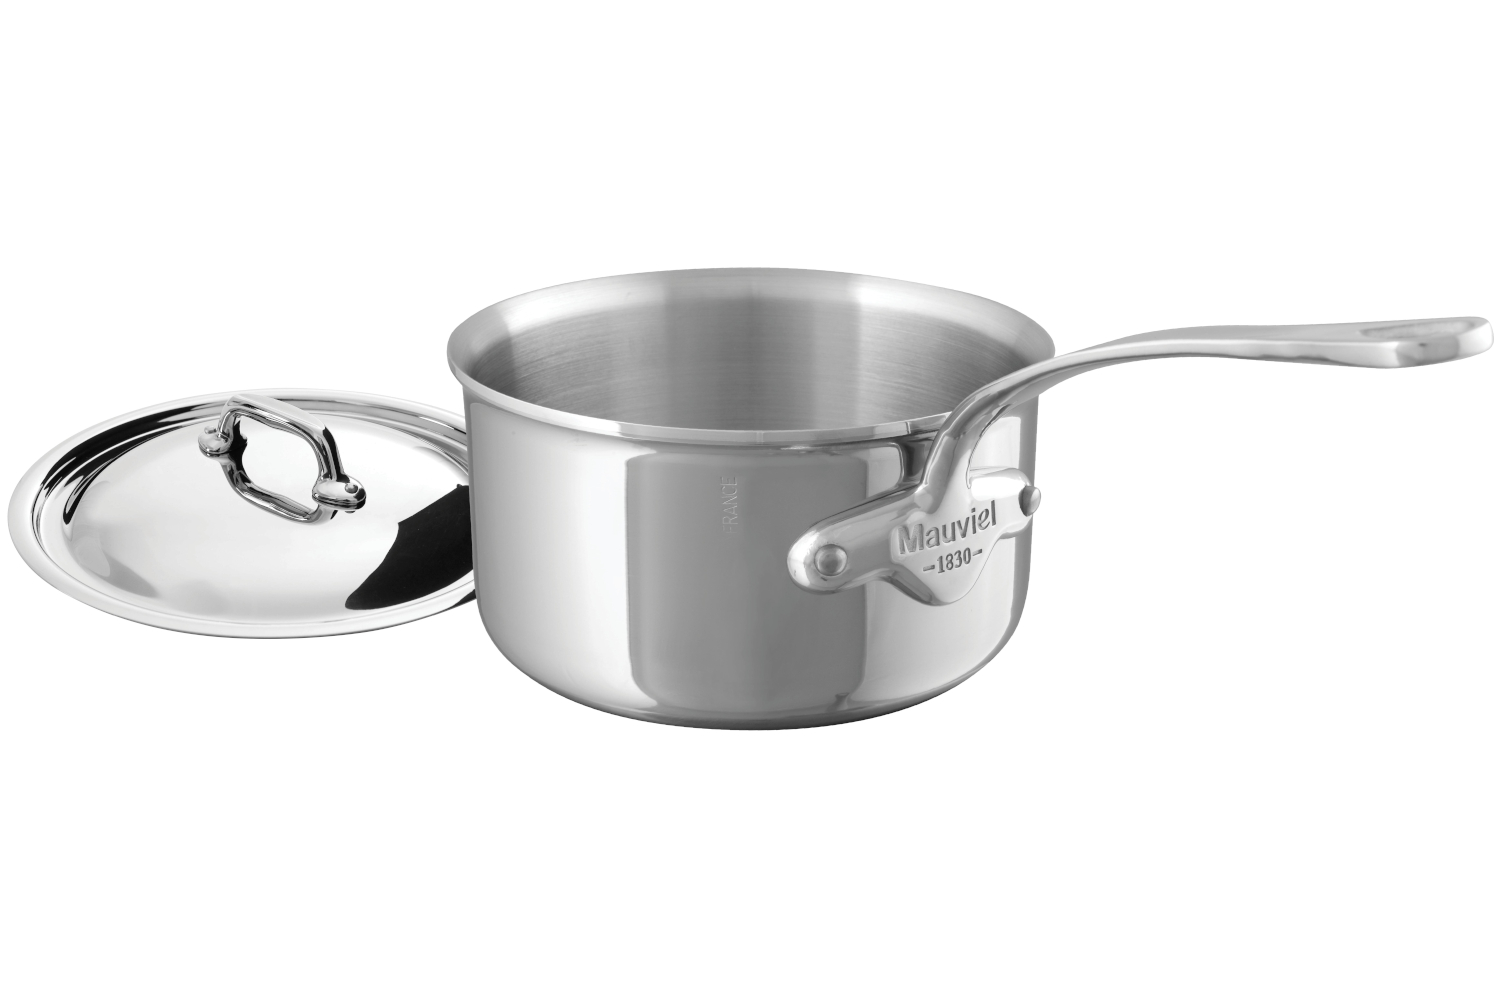 Mauviel M'cook Stainless Steel 1.2 qt. Sauce Pan w/Lid